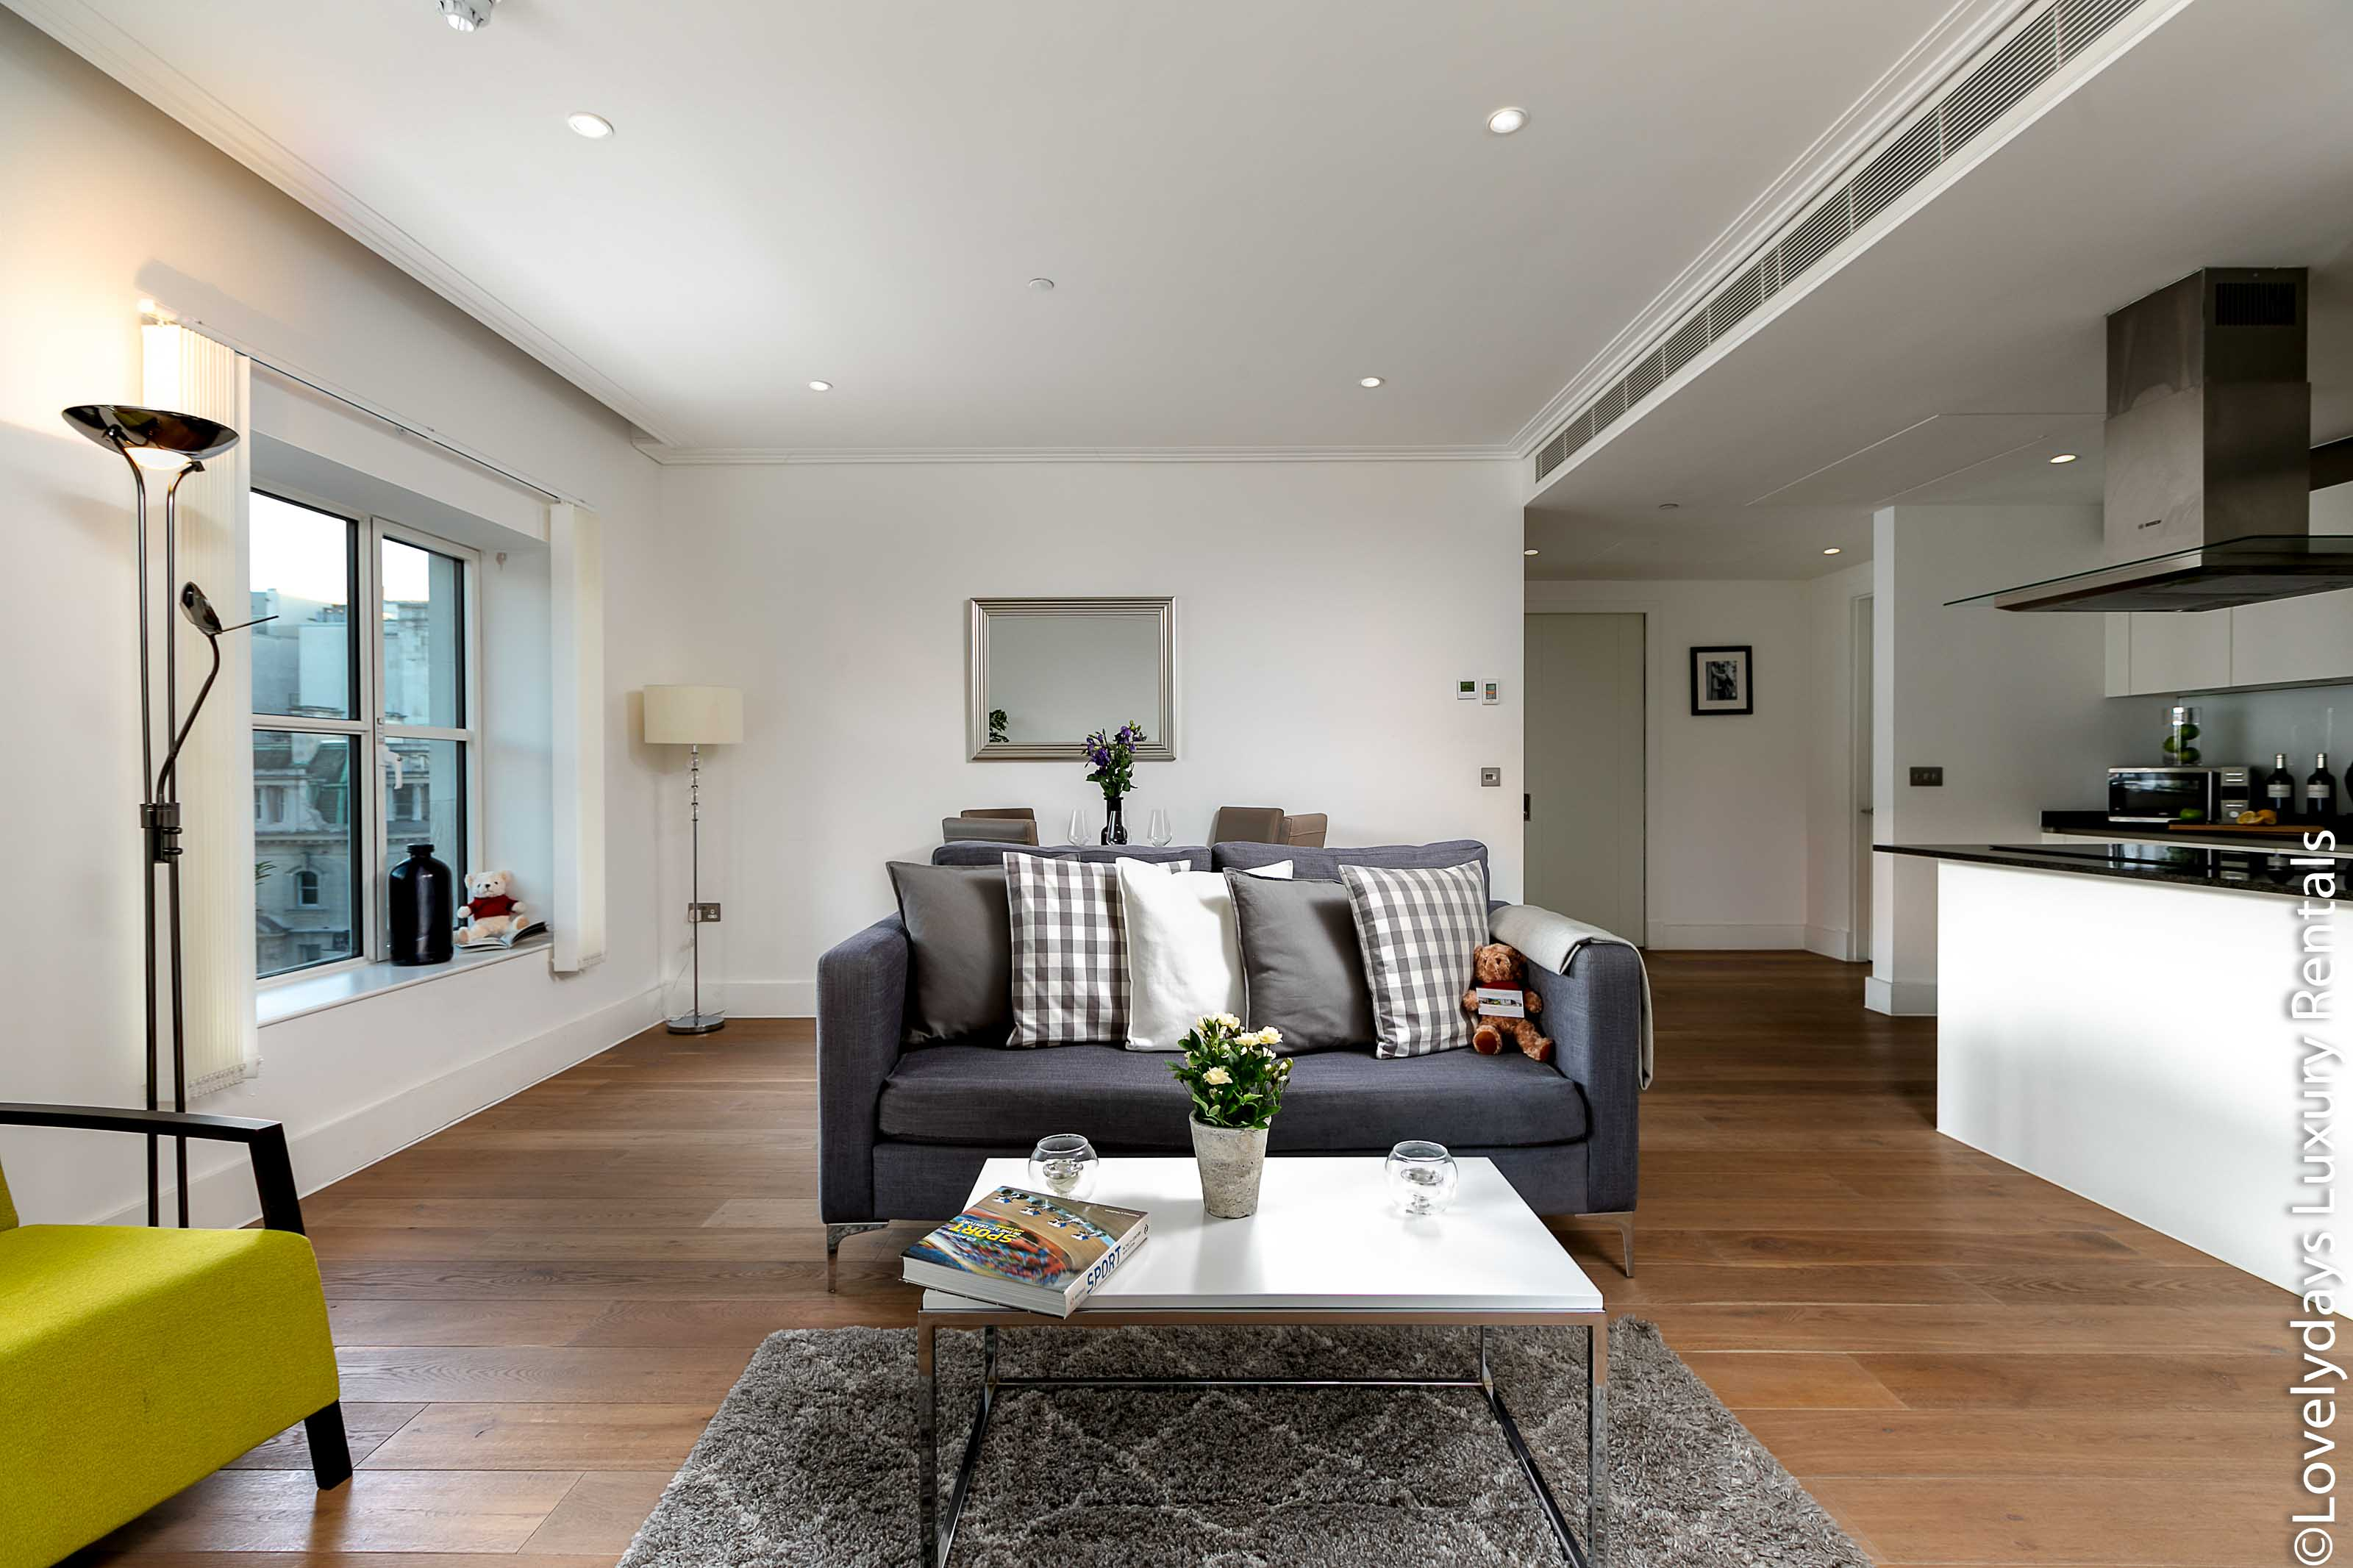 Prince's House 603 : Luxury Flat to Rent in Covent Garden